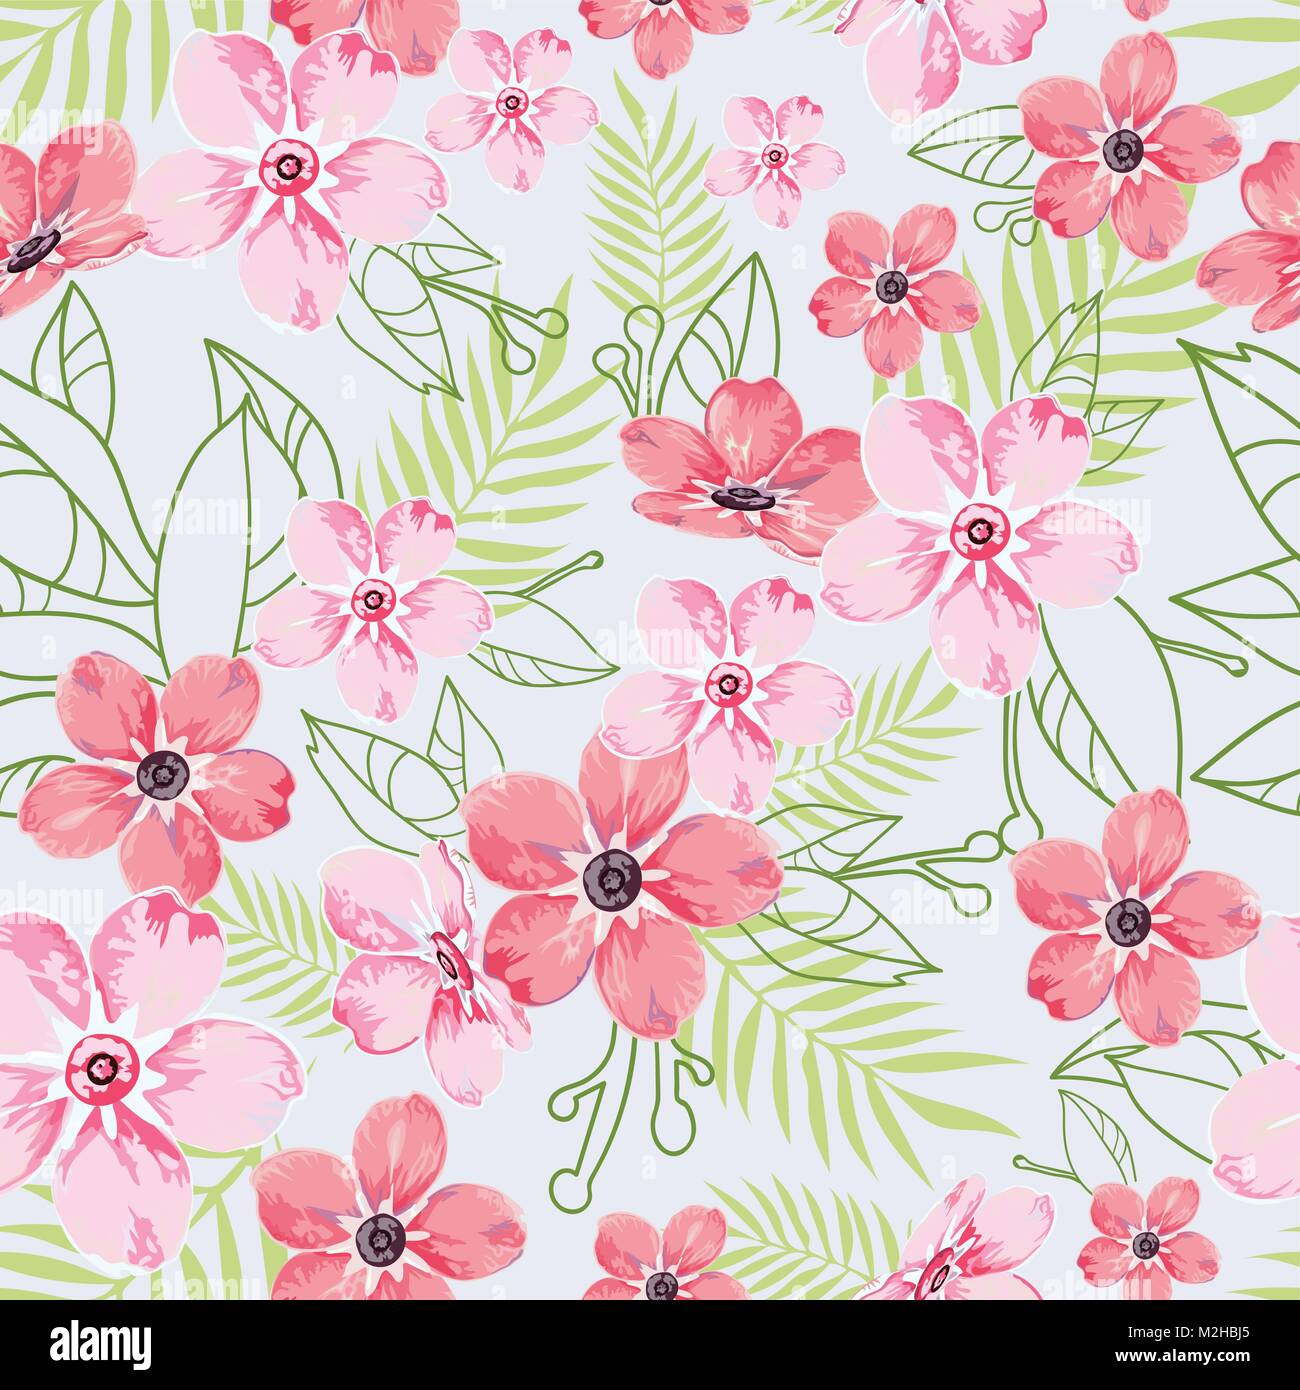 Seamless Floral Pattern, Background In Light Blue With